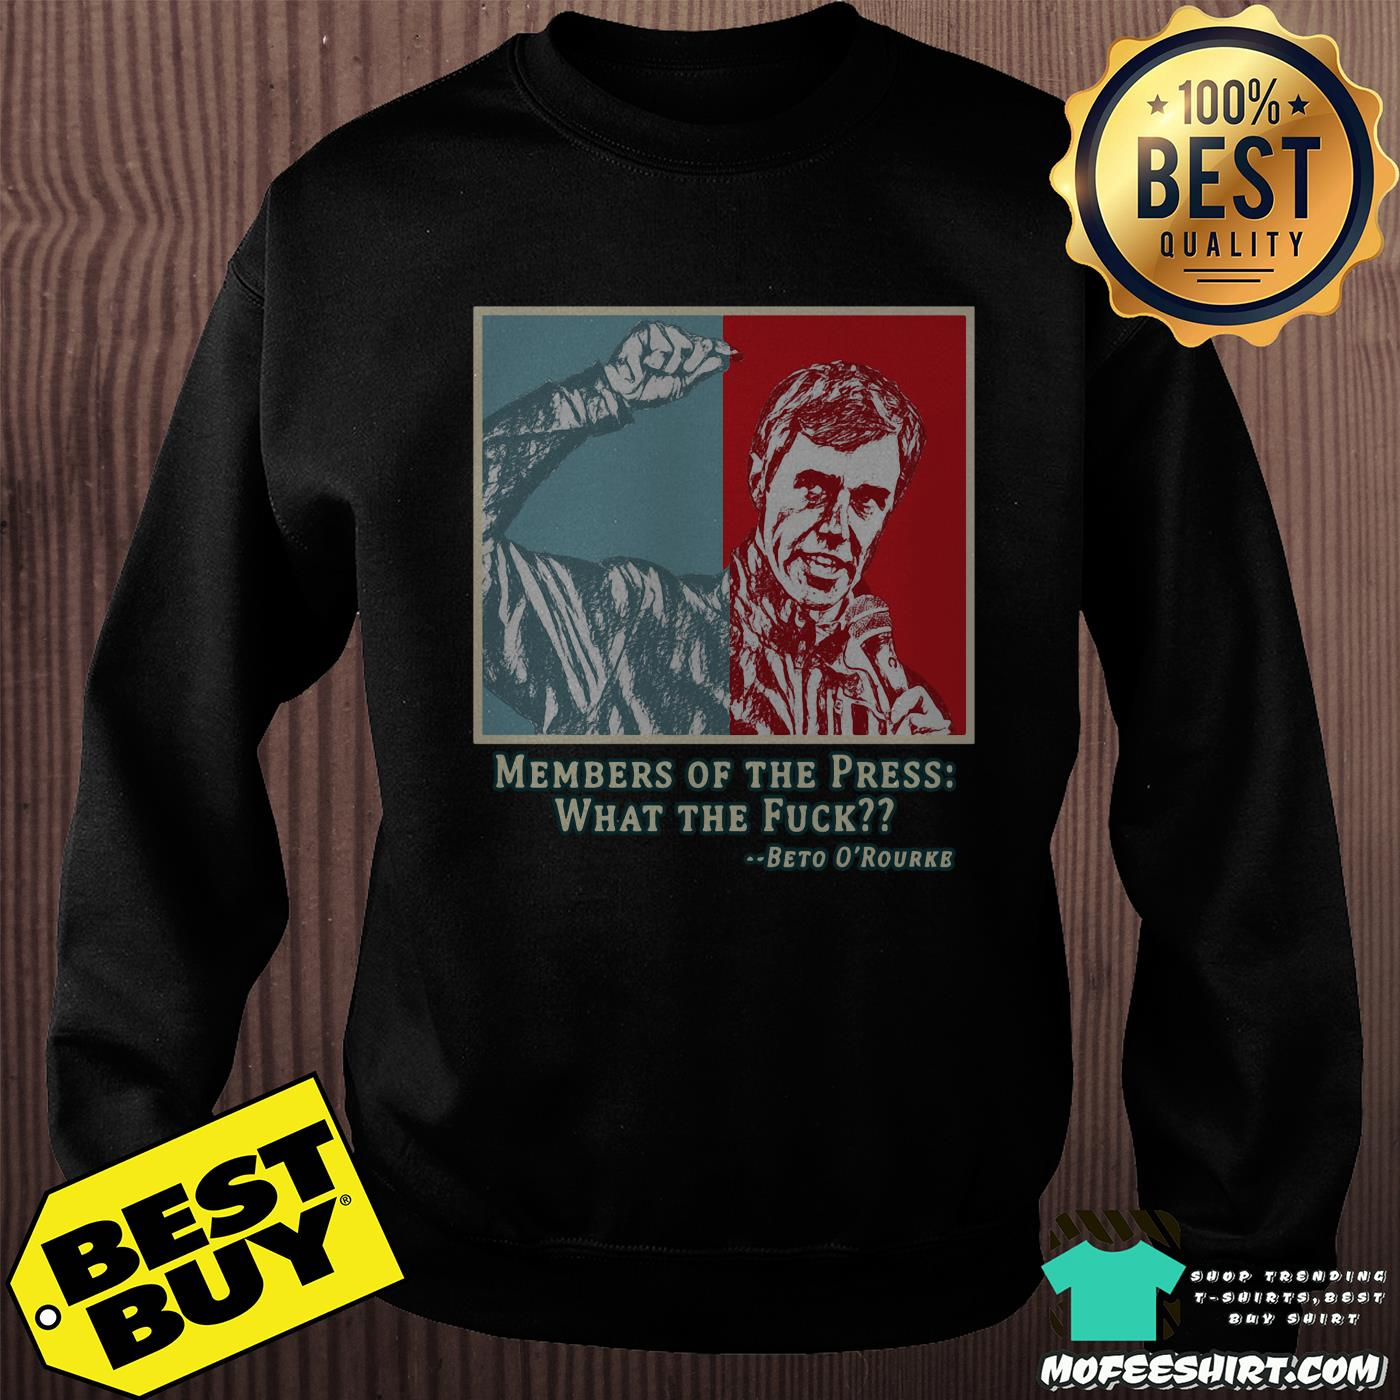 members of the press what the fuck beto orourke sweatshirt - Members of the press what the fuck Beto O'Rourke shirt